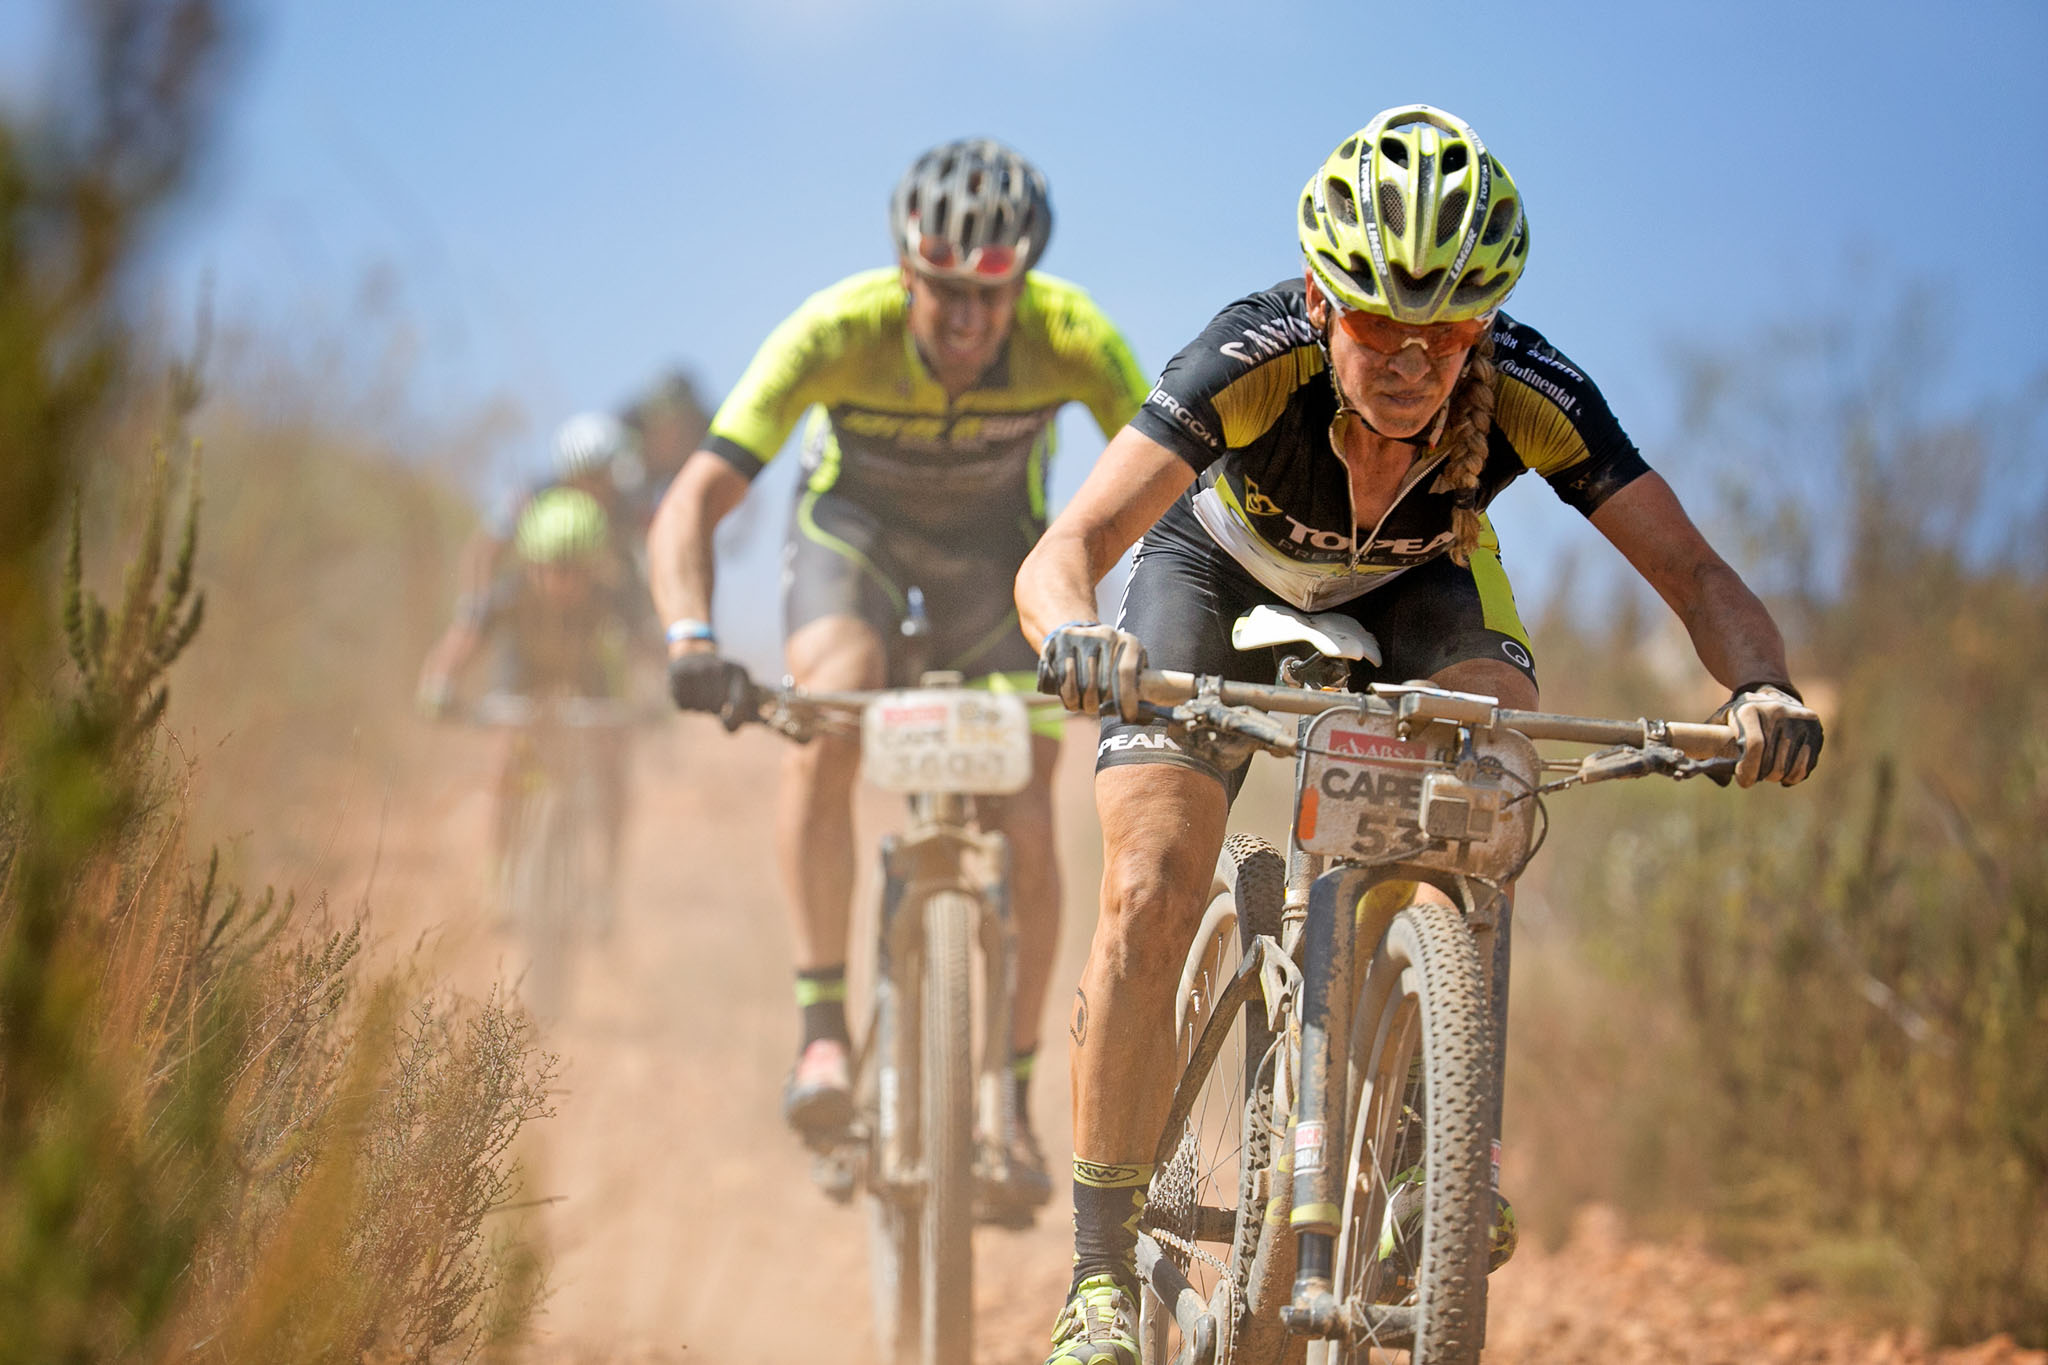 Sally Bigham of Team Topeak Ergon during stage 5 of the 2016 Absa Cape Epic Mountain Bike stage race held from the Cape Peninsula University of Technology in Wellington to Boschendal in Stellenbosch, South Africa on the 18th March 2016 Photo by Mark Sampson/Cape Epic/SPORTZPICS PLEASE ENSURE THE APPROPRIATE CREDIT IS GIVEN TO THE PHOTOGRAPHER AND SPORTZPICS ALONG WITH THE ABSA CAPE EPIC ace2016